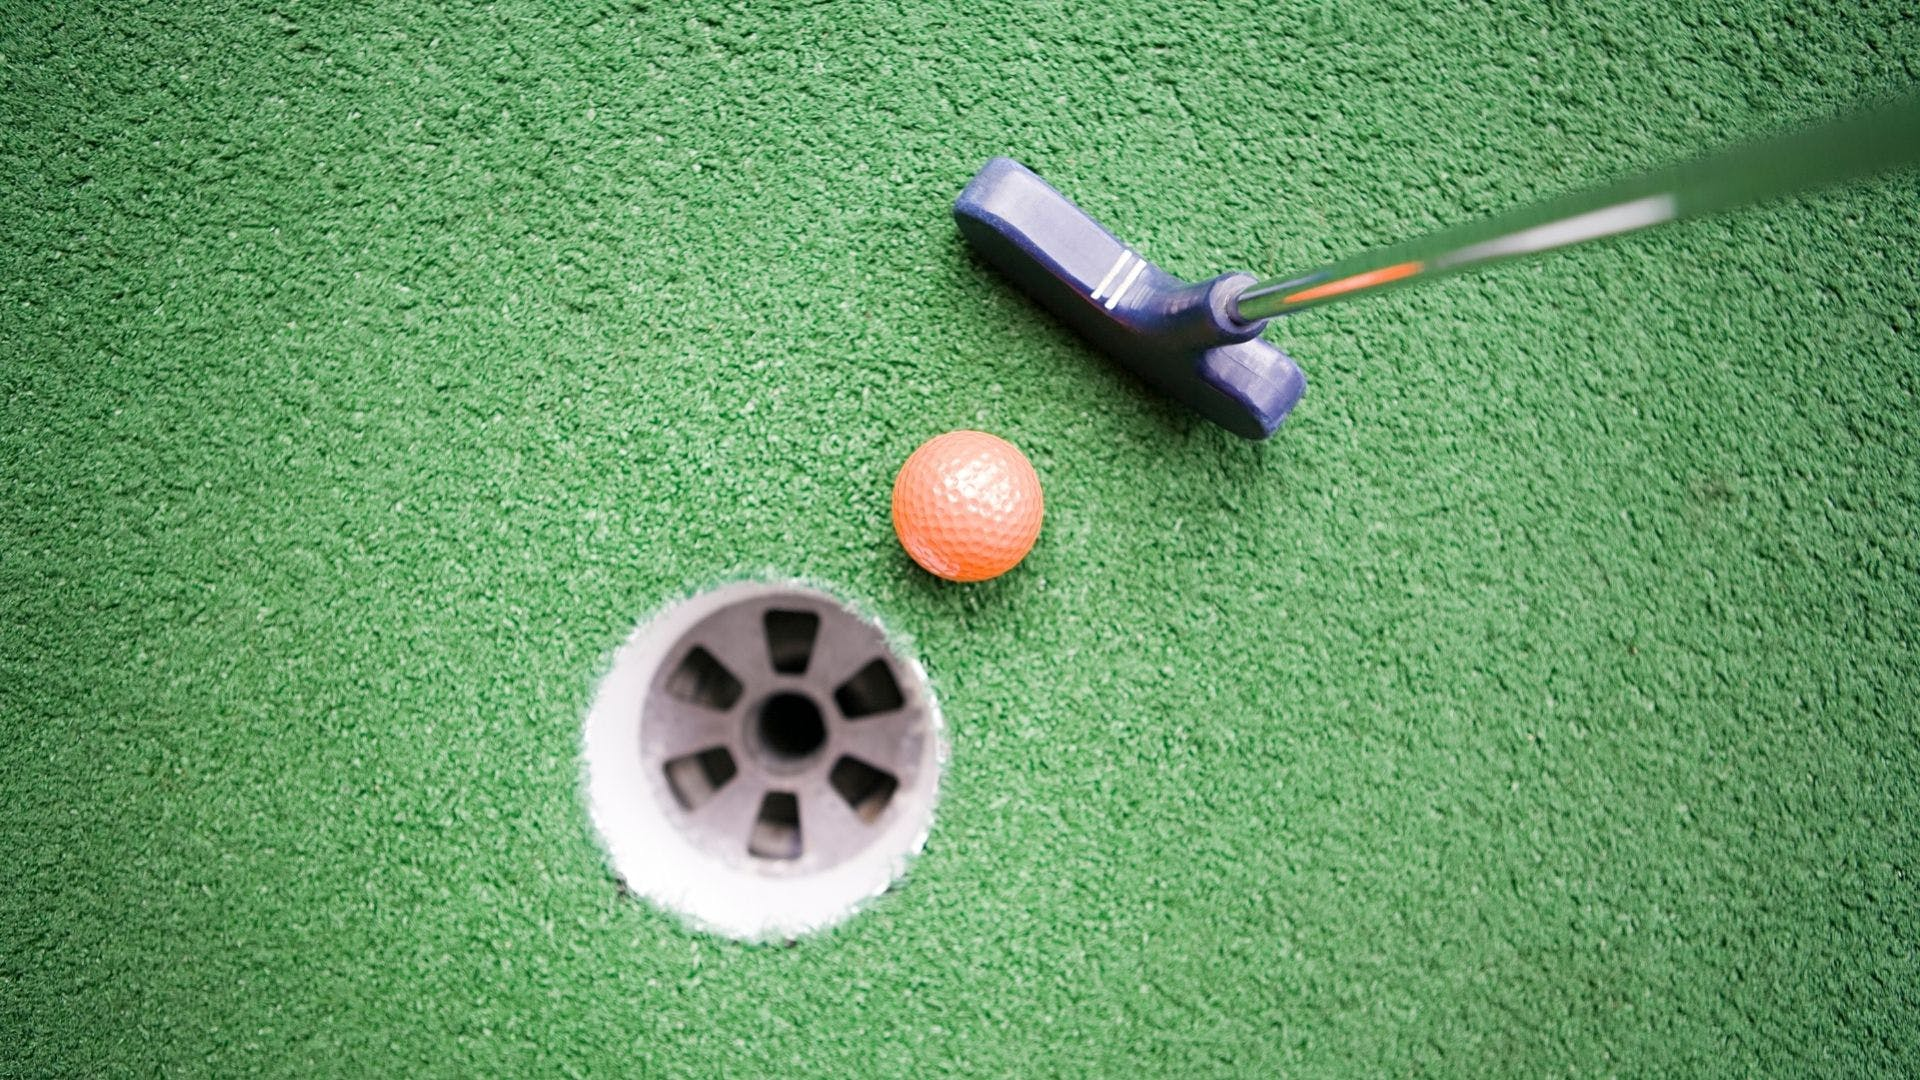 A birds eye view of a mini golf ball going into the hole